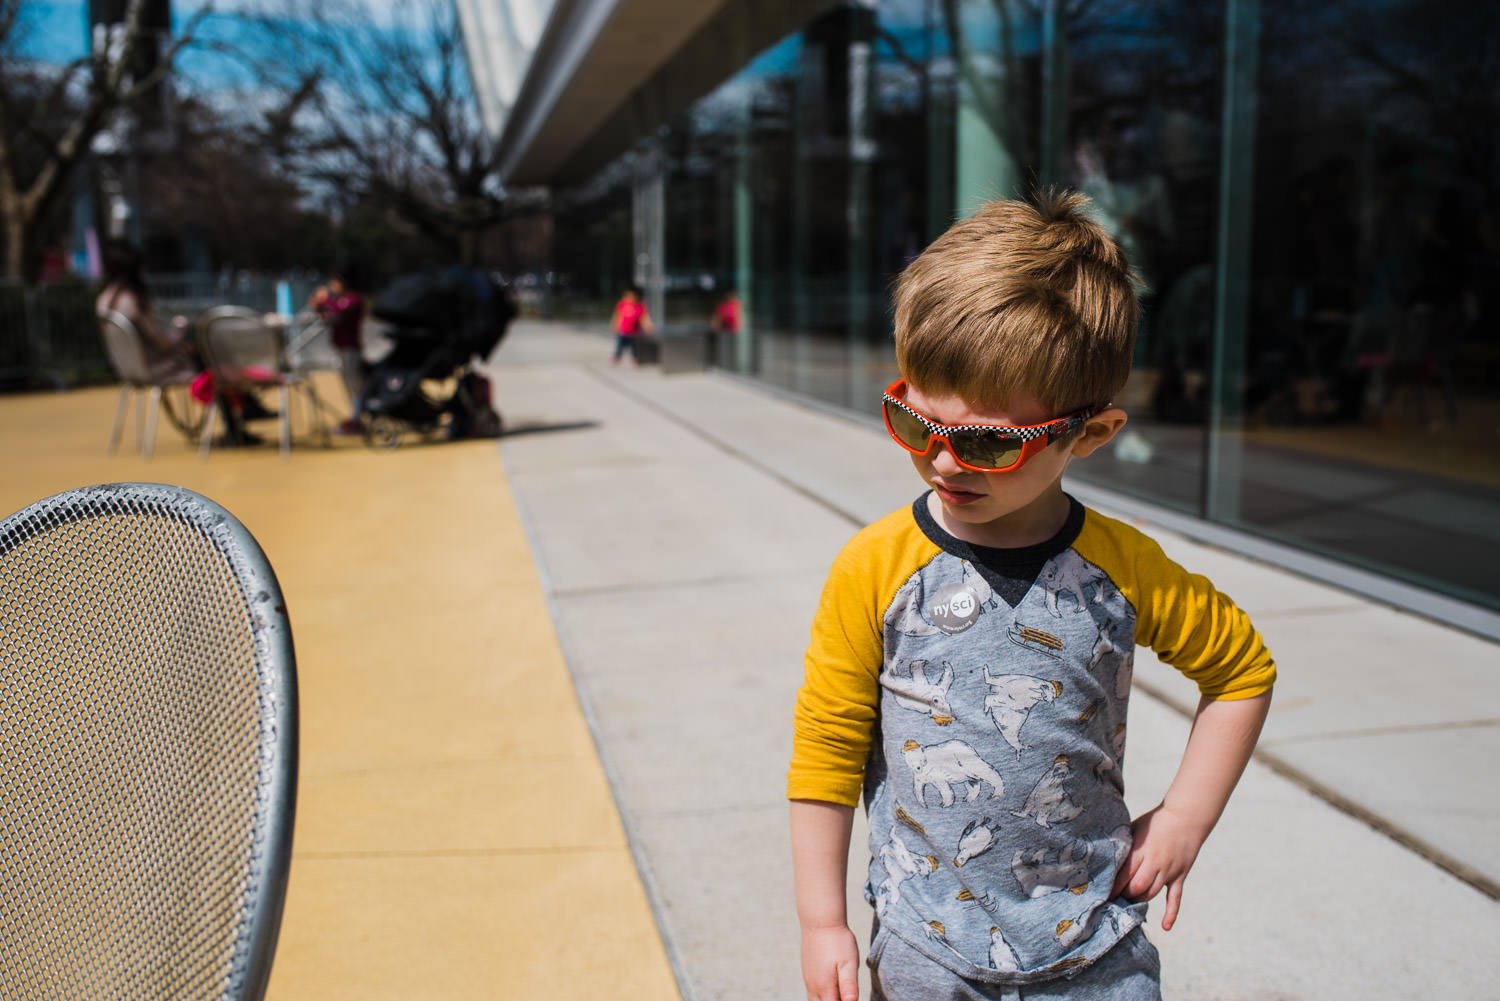 A little boy poses in sunglasses.